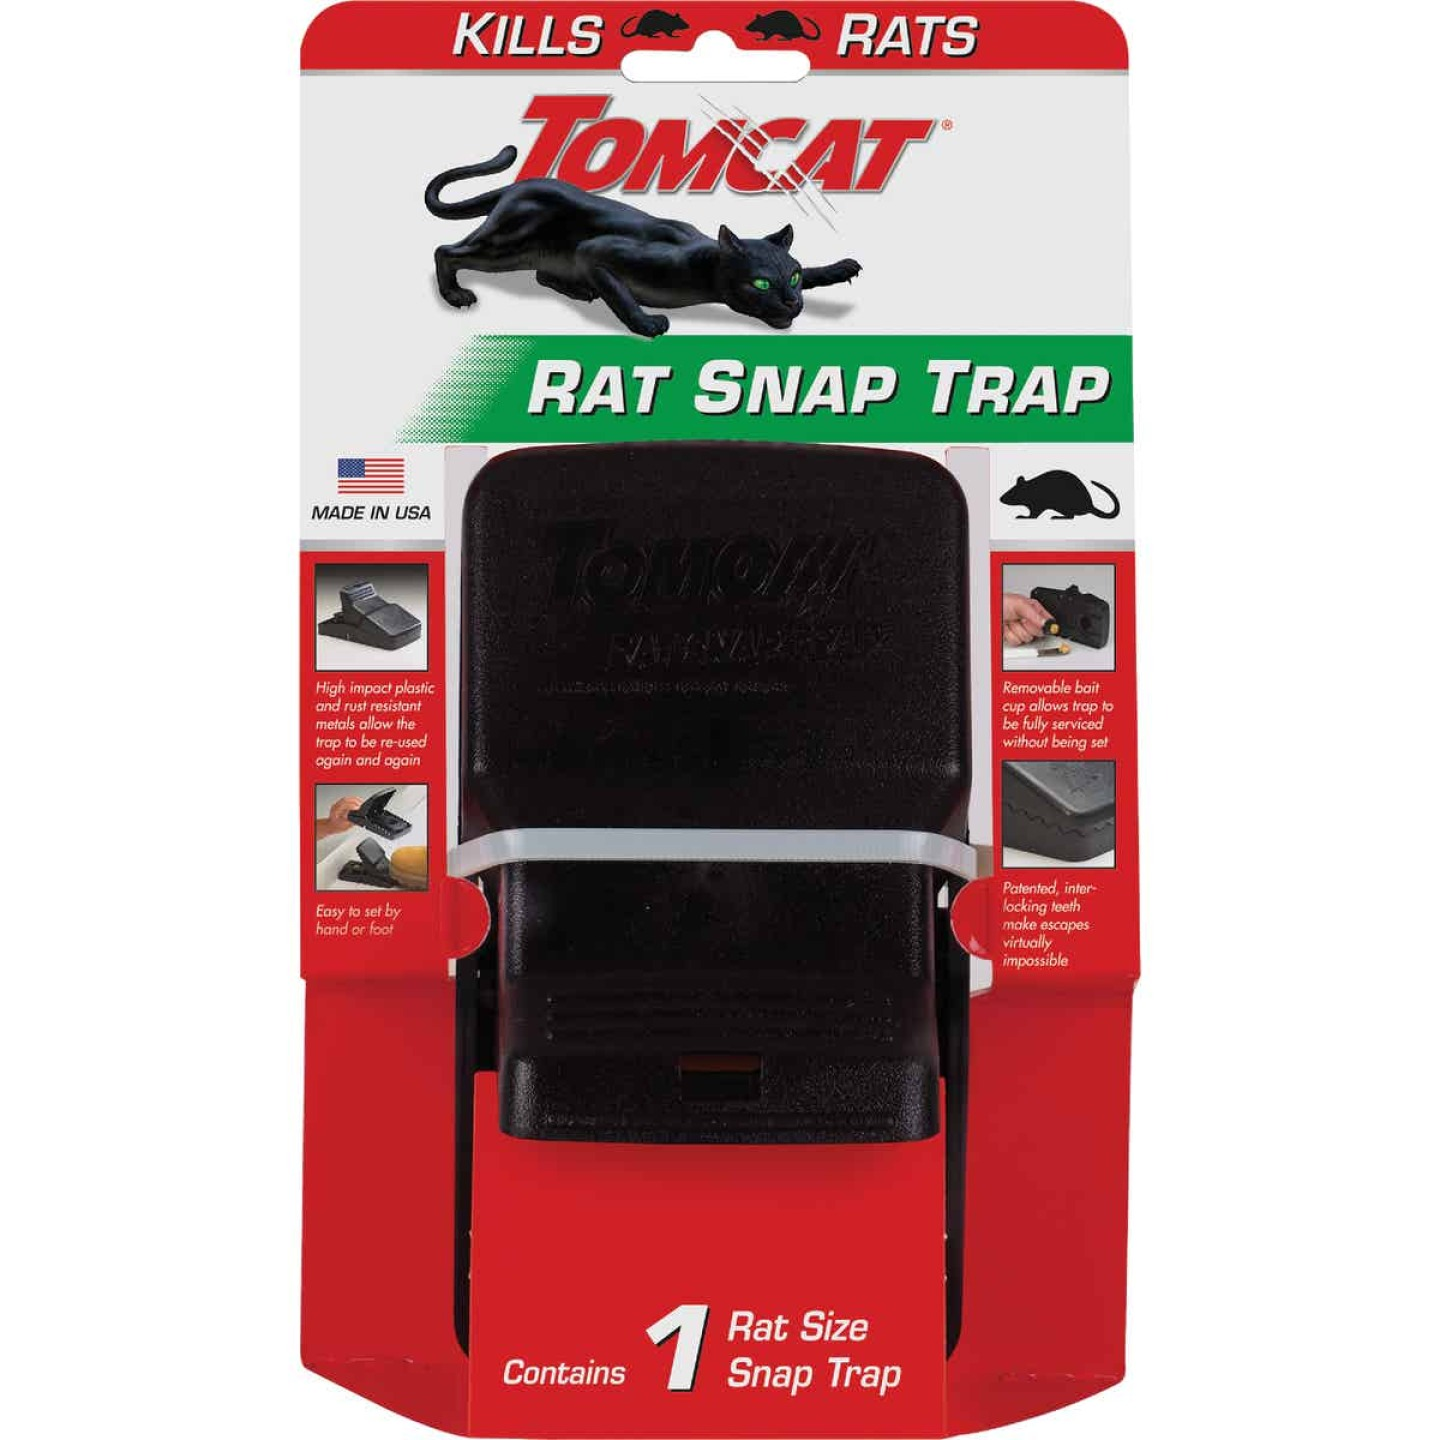 Tomcat Rat Snap Mechanical Rat Trap (1-Pack) Image 2